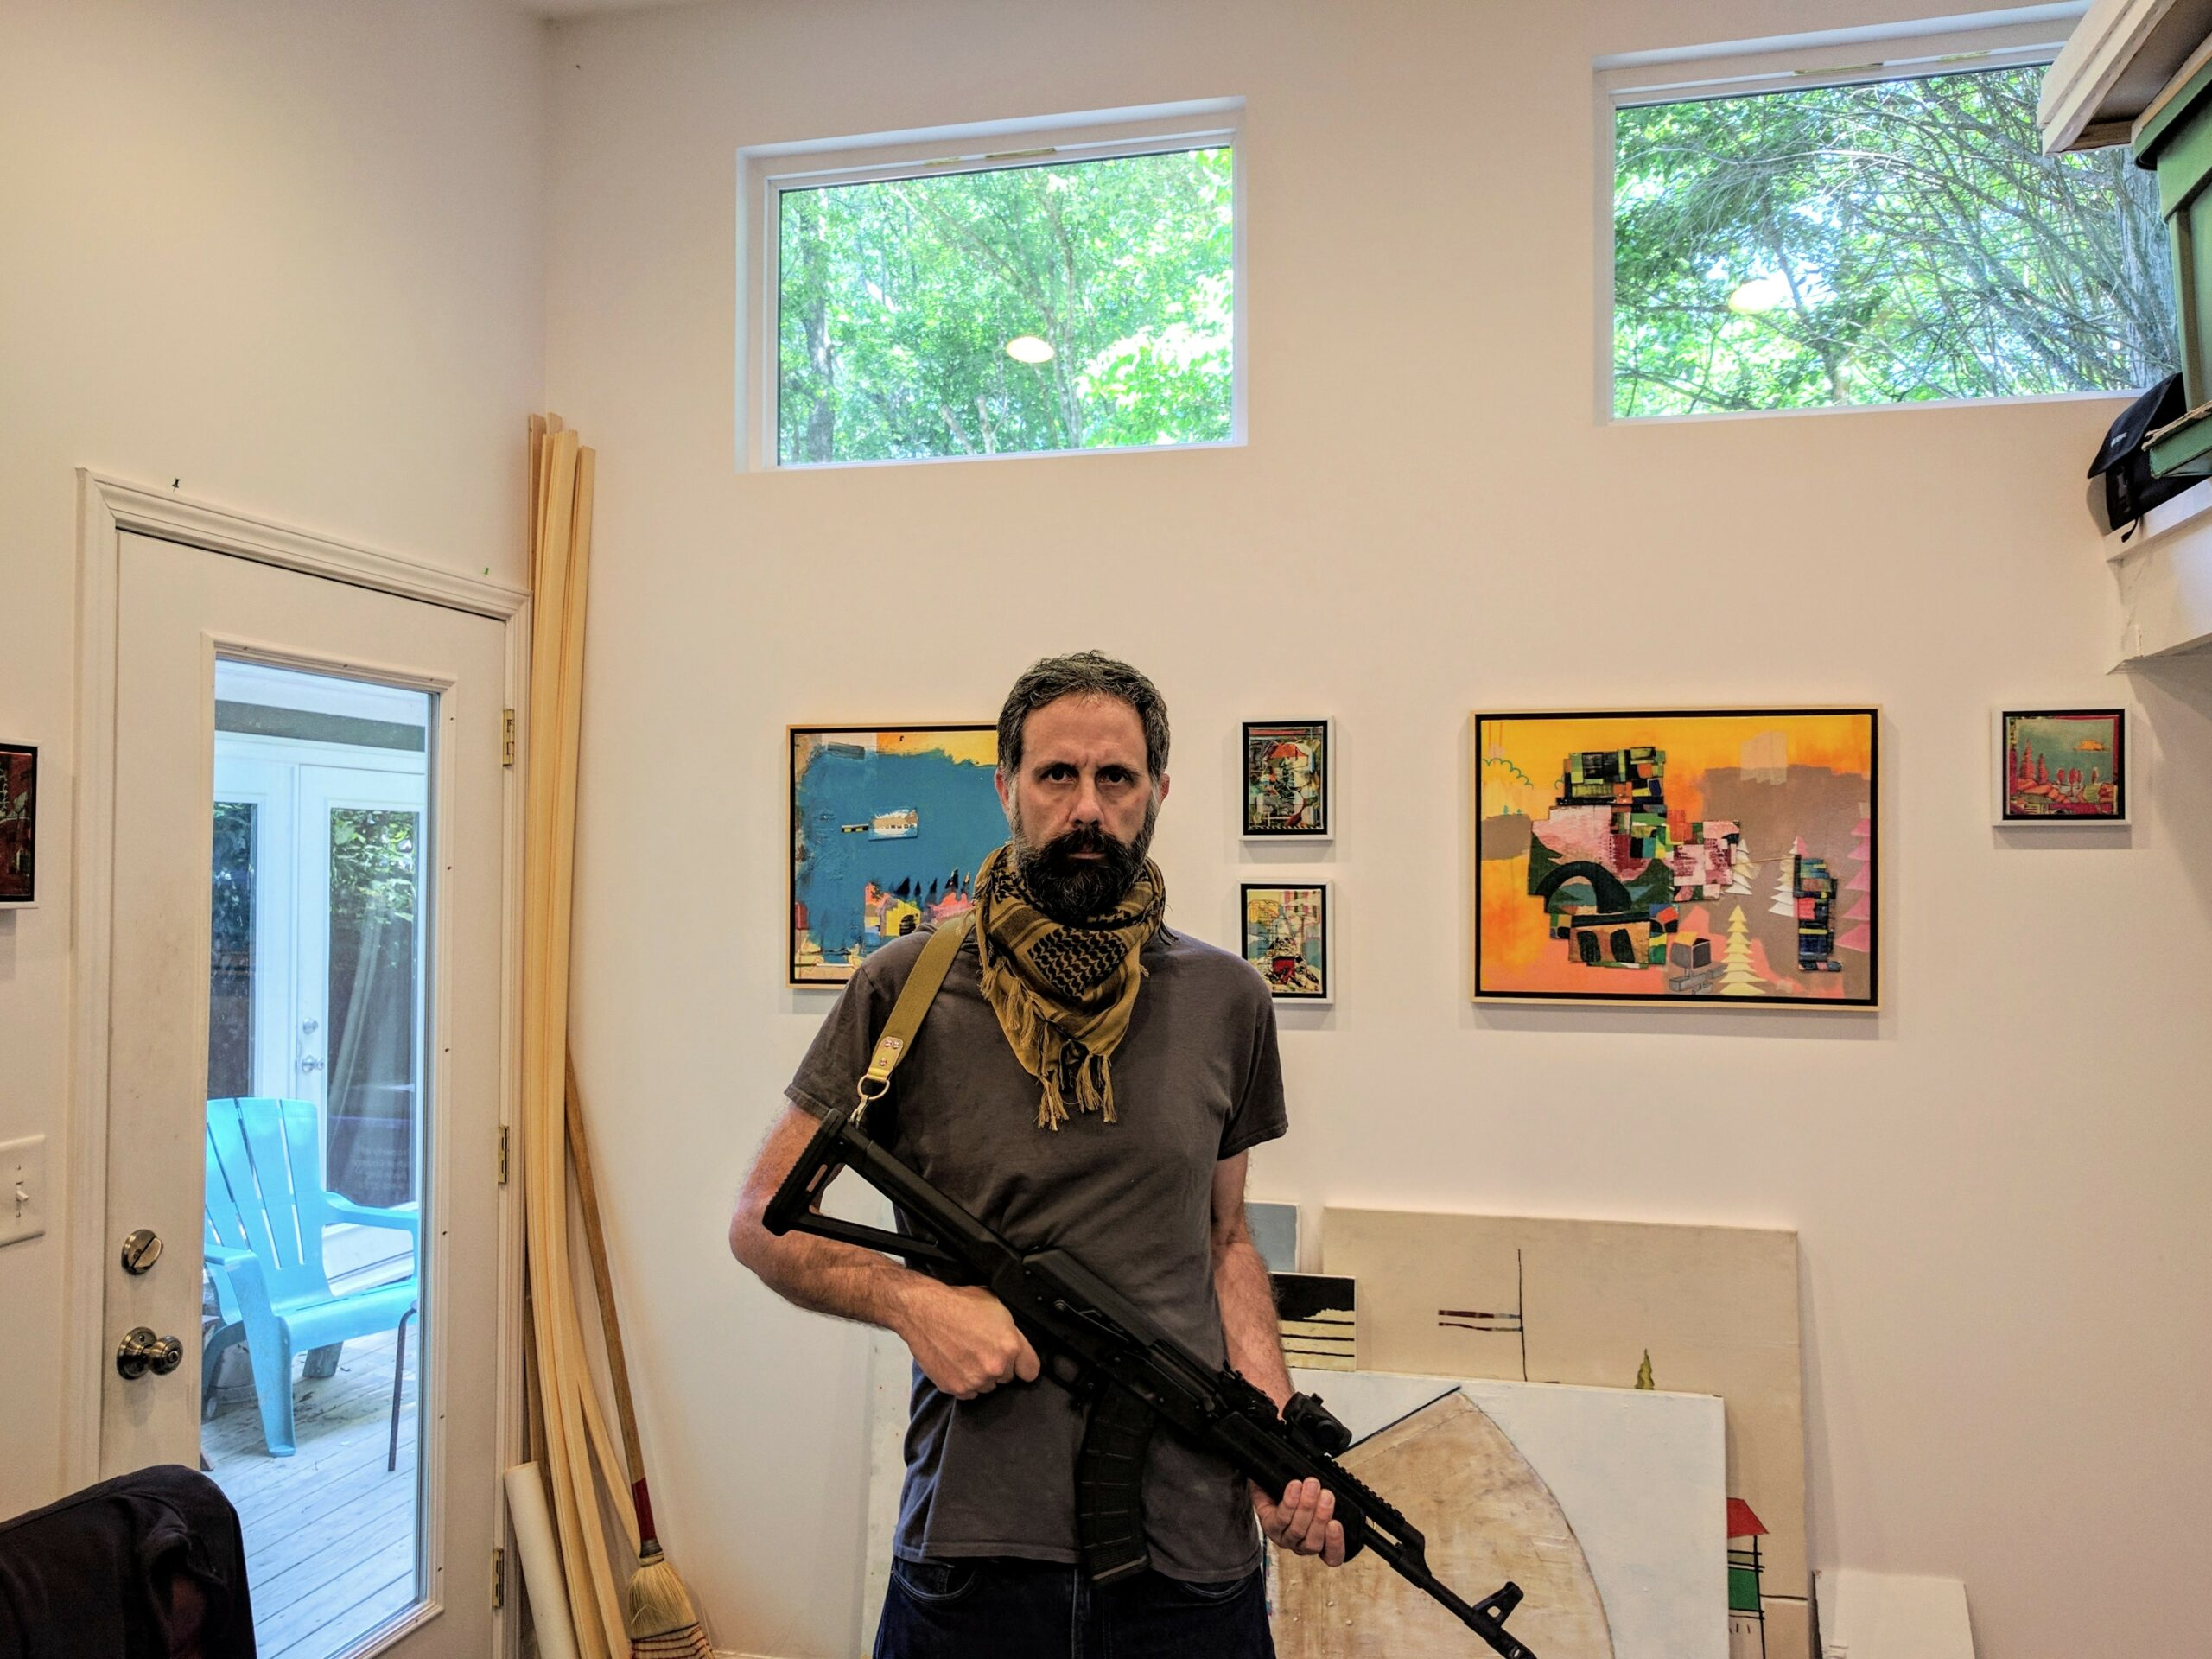 A man stares at the camera holding a rifle. There are paintings on the wall behind him and on the floor leaning against the wall